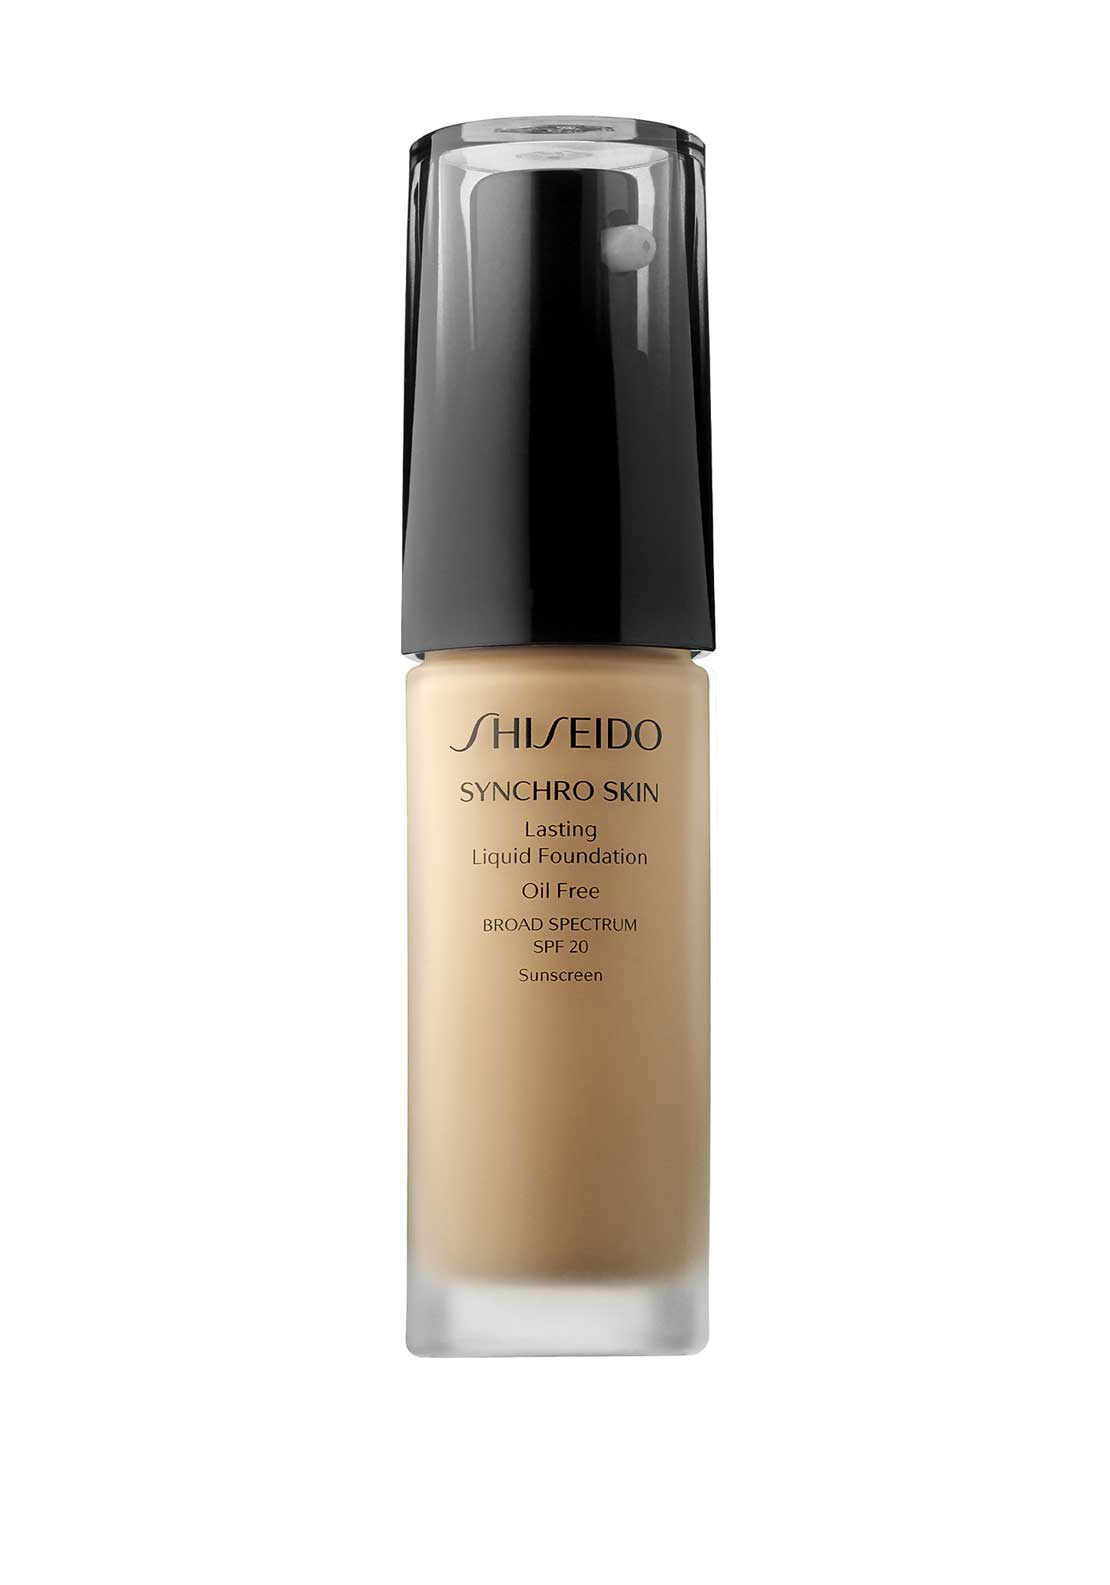 Shiseido Synchro Skin Lasting Liquid Foundation, Broad Spectrum SPF 20, Natural 3